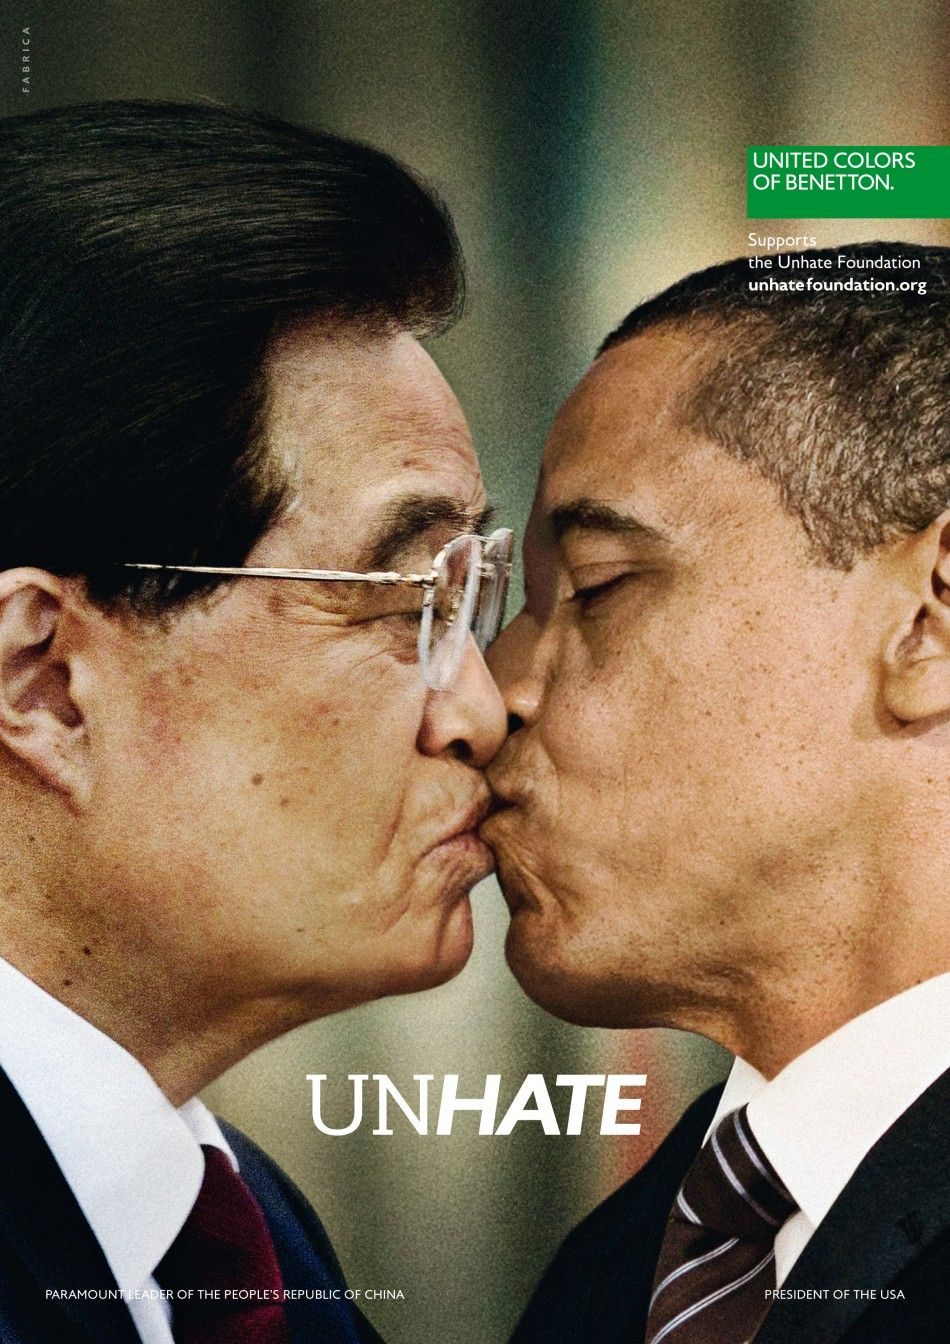 UNHATE United Colors Of Benetton FASHION PRINT AD Pinterest - 35 controversial shocking adverts make stop think